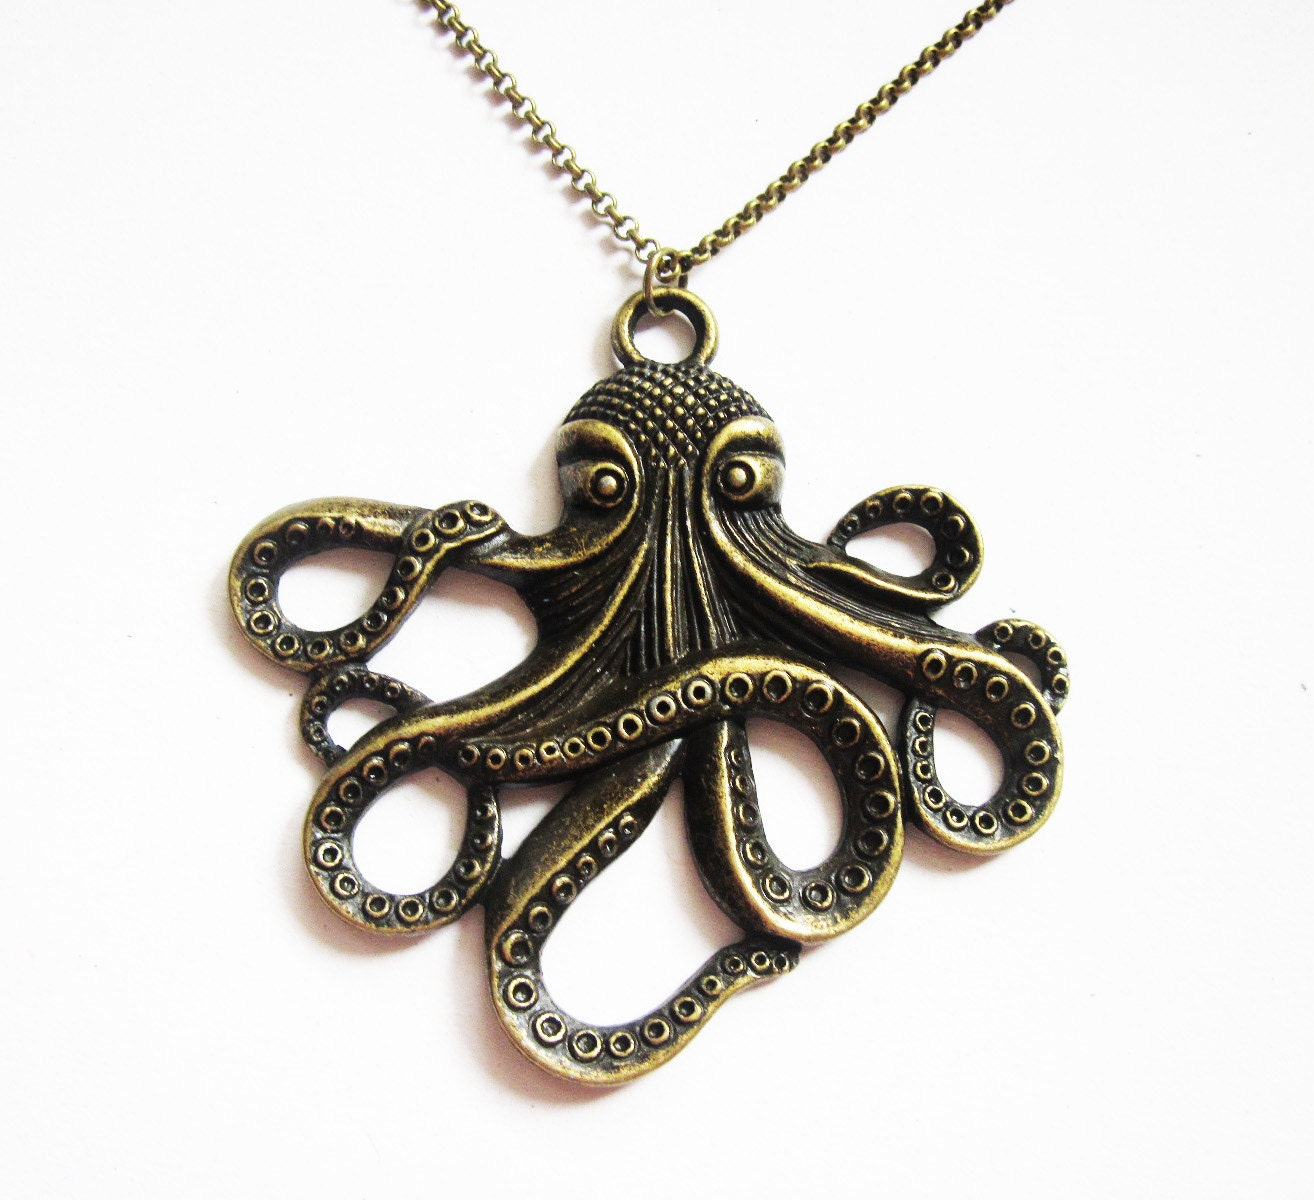 pendant necklace aquatic colored glass octopus